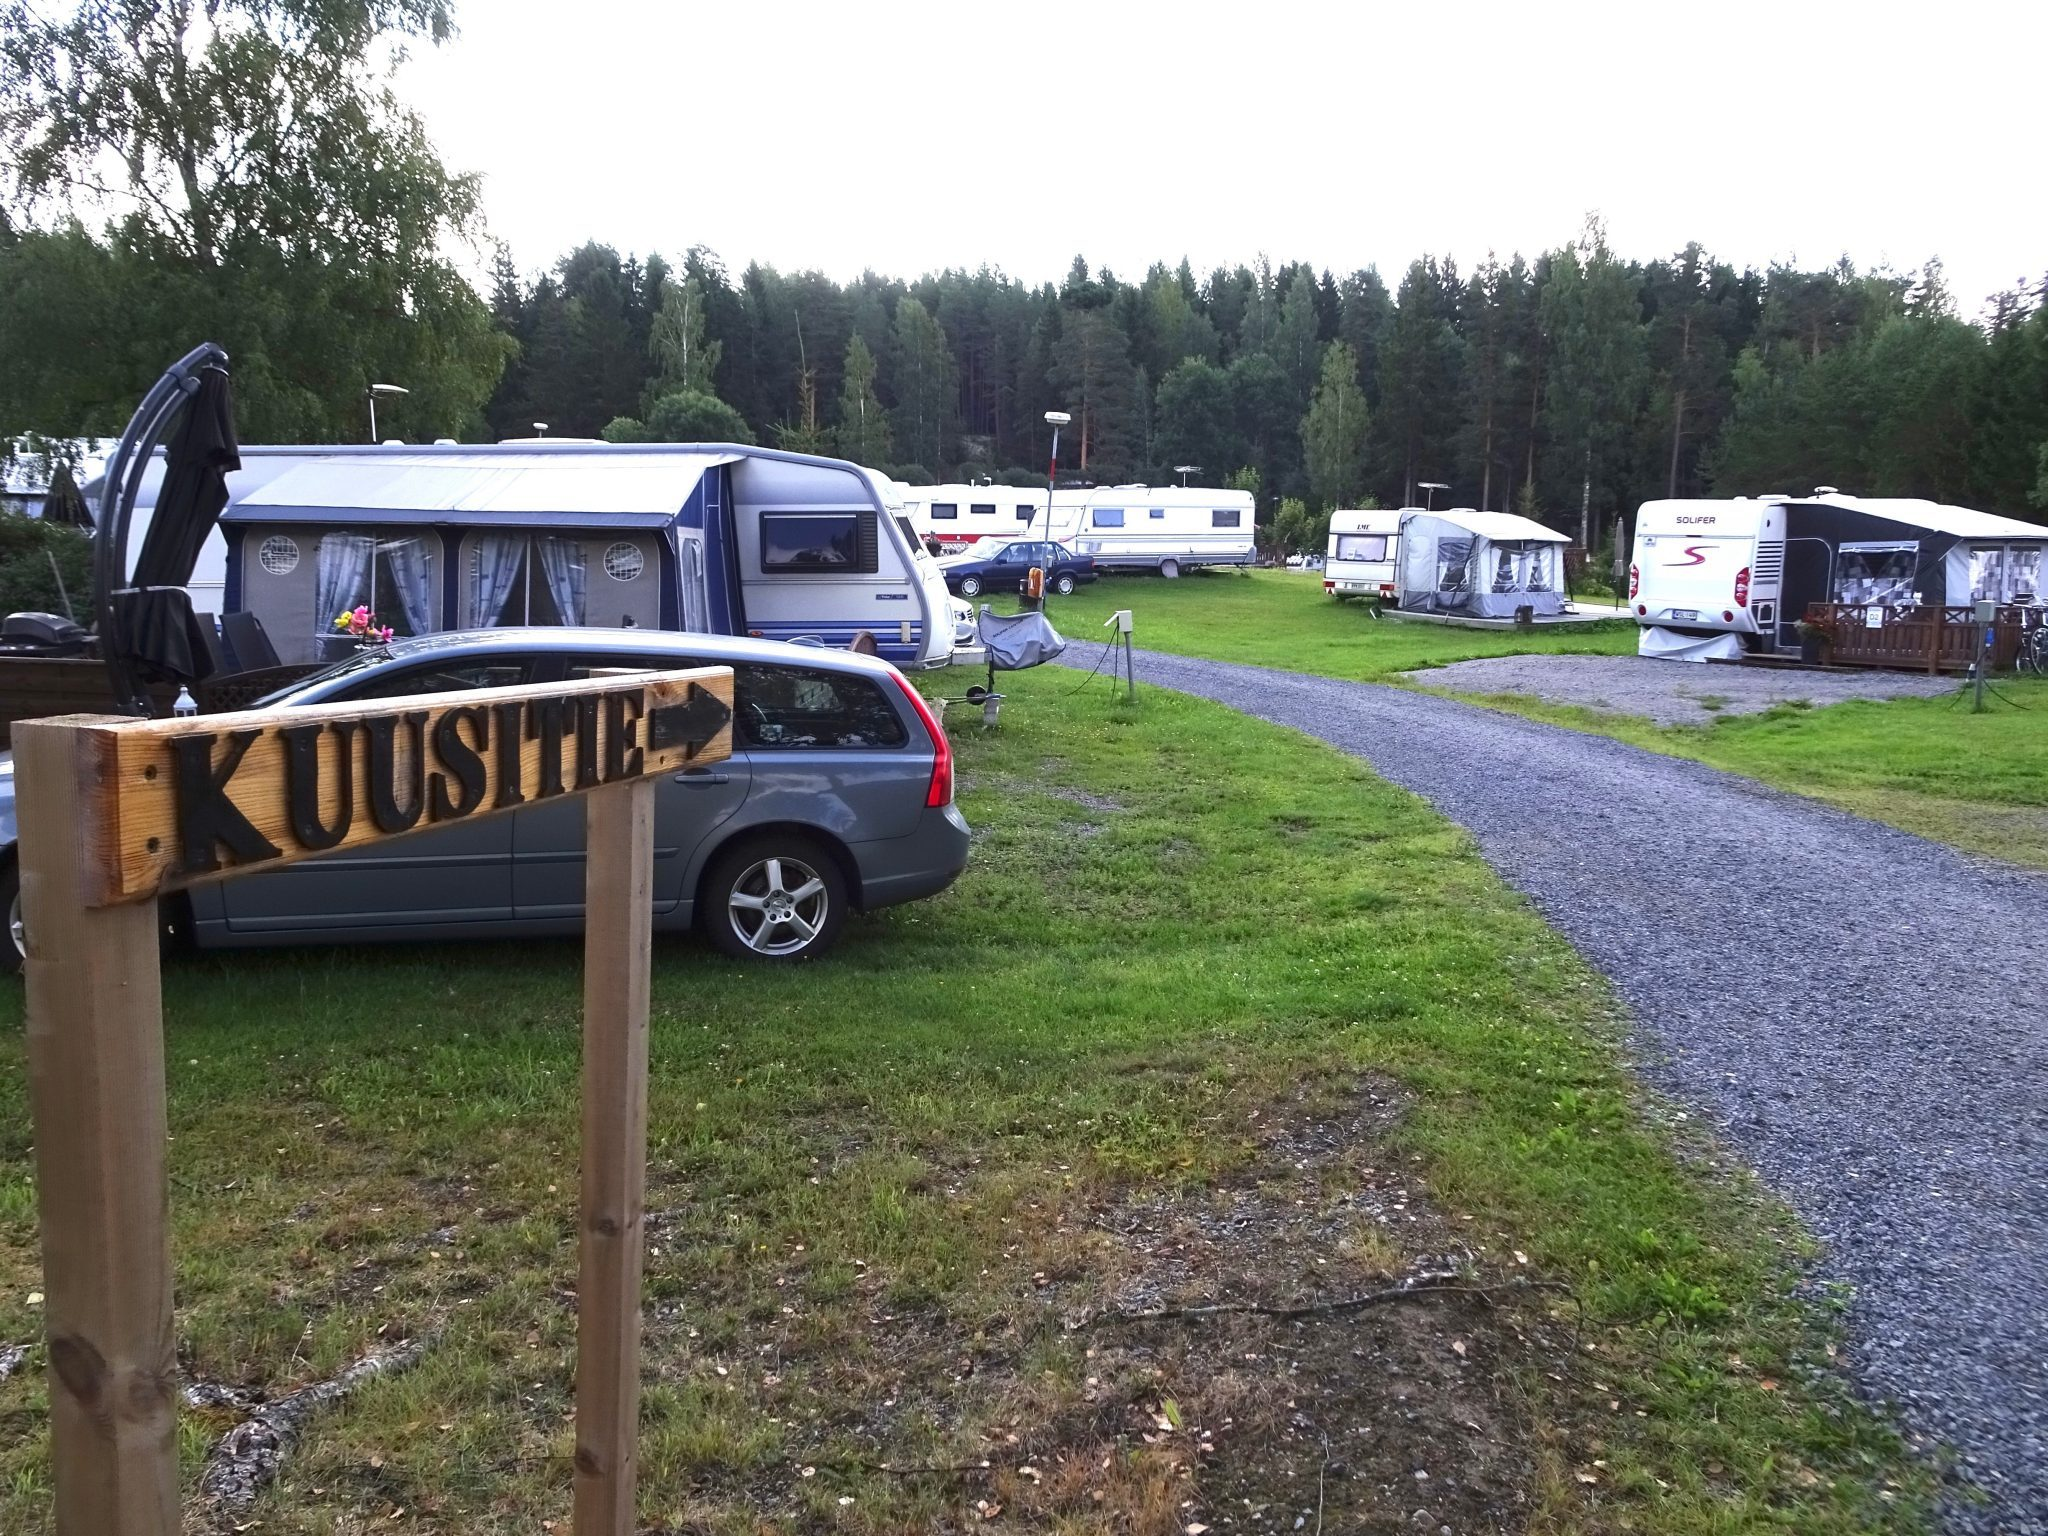 Row of caravans in Maisansalo